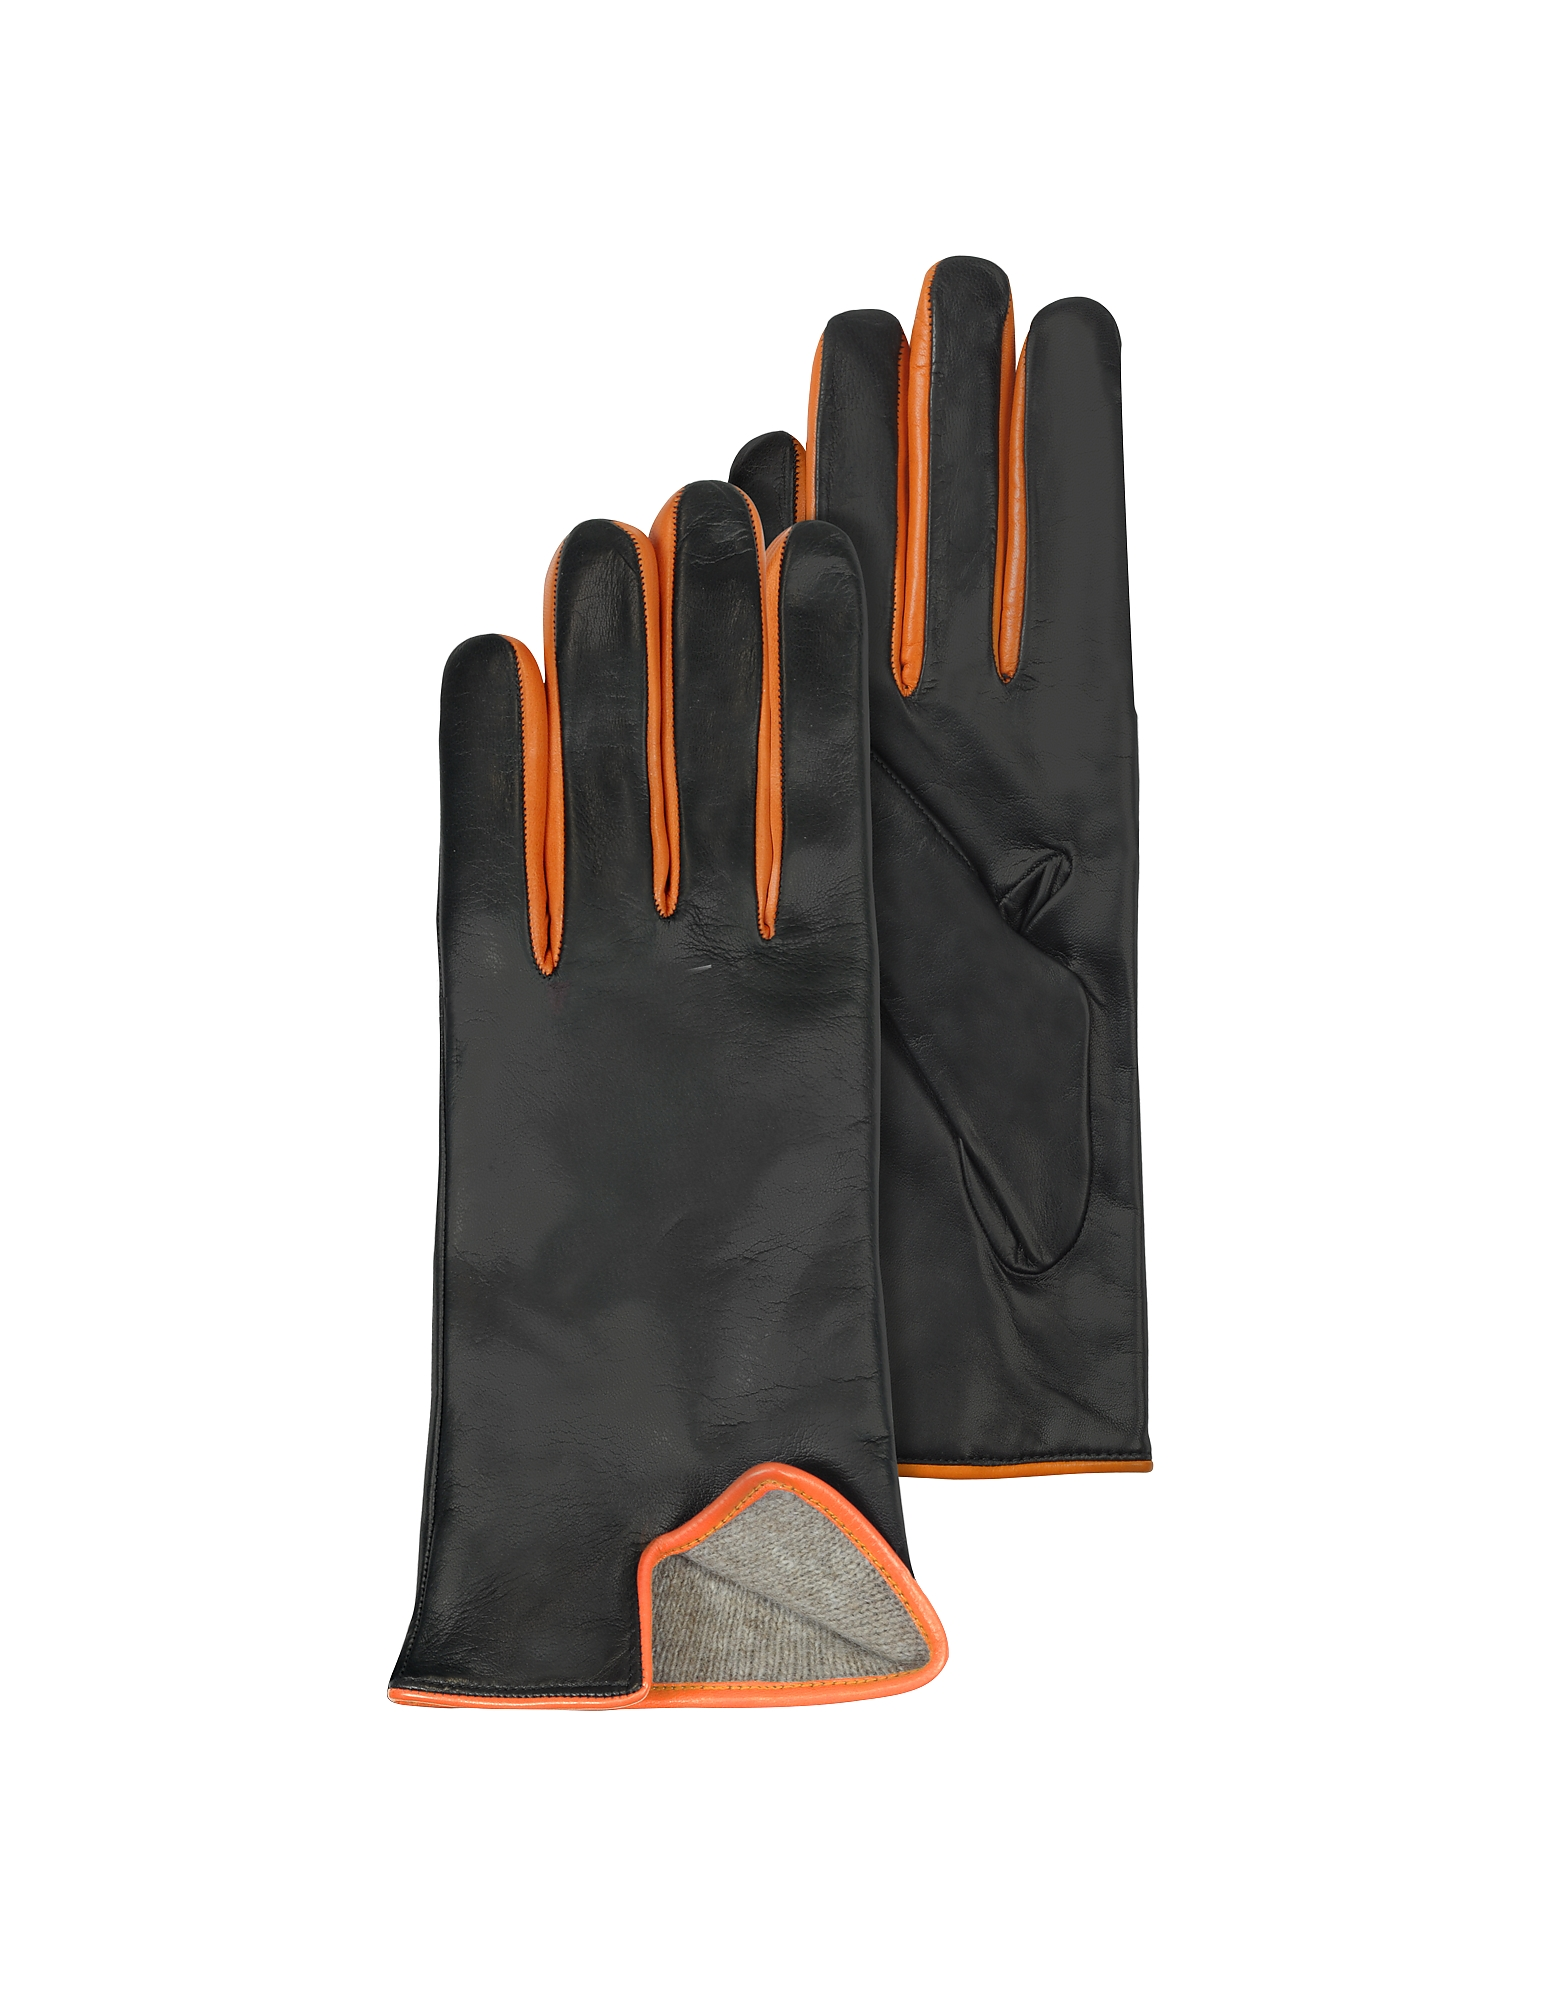 Black & Orange Cashmere Lined Leather Ladies' Gloves от Forzieri.com INT